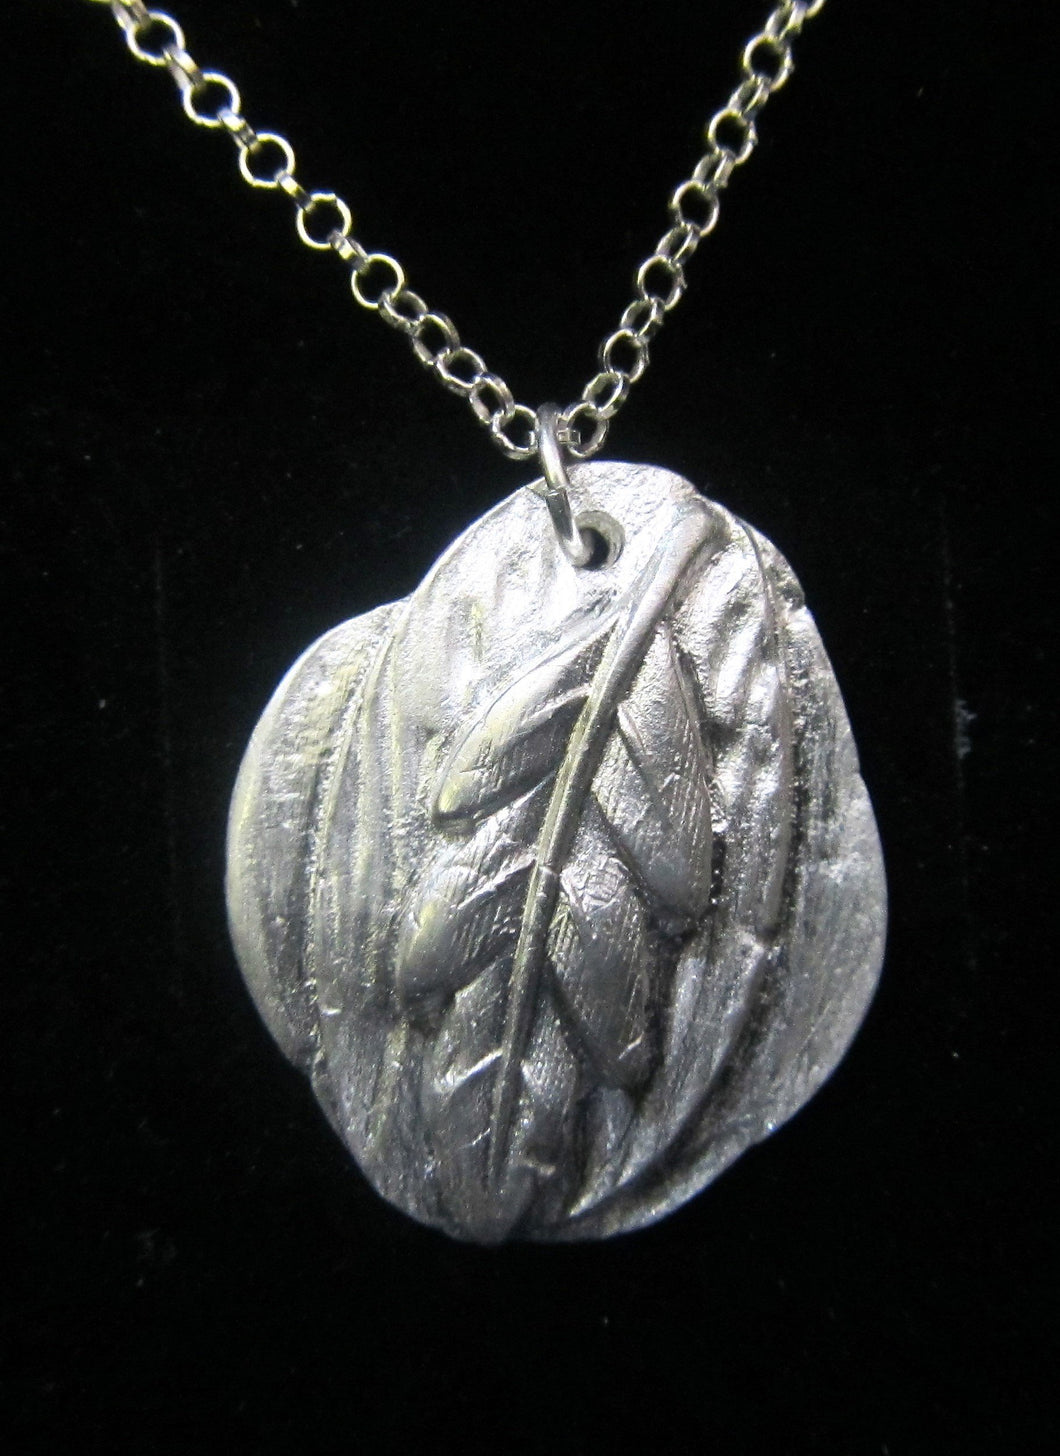 Handcrafted sterling silver leaf pendant with 925 Silver necklace